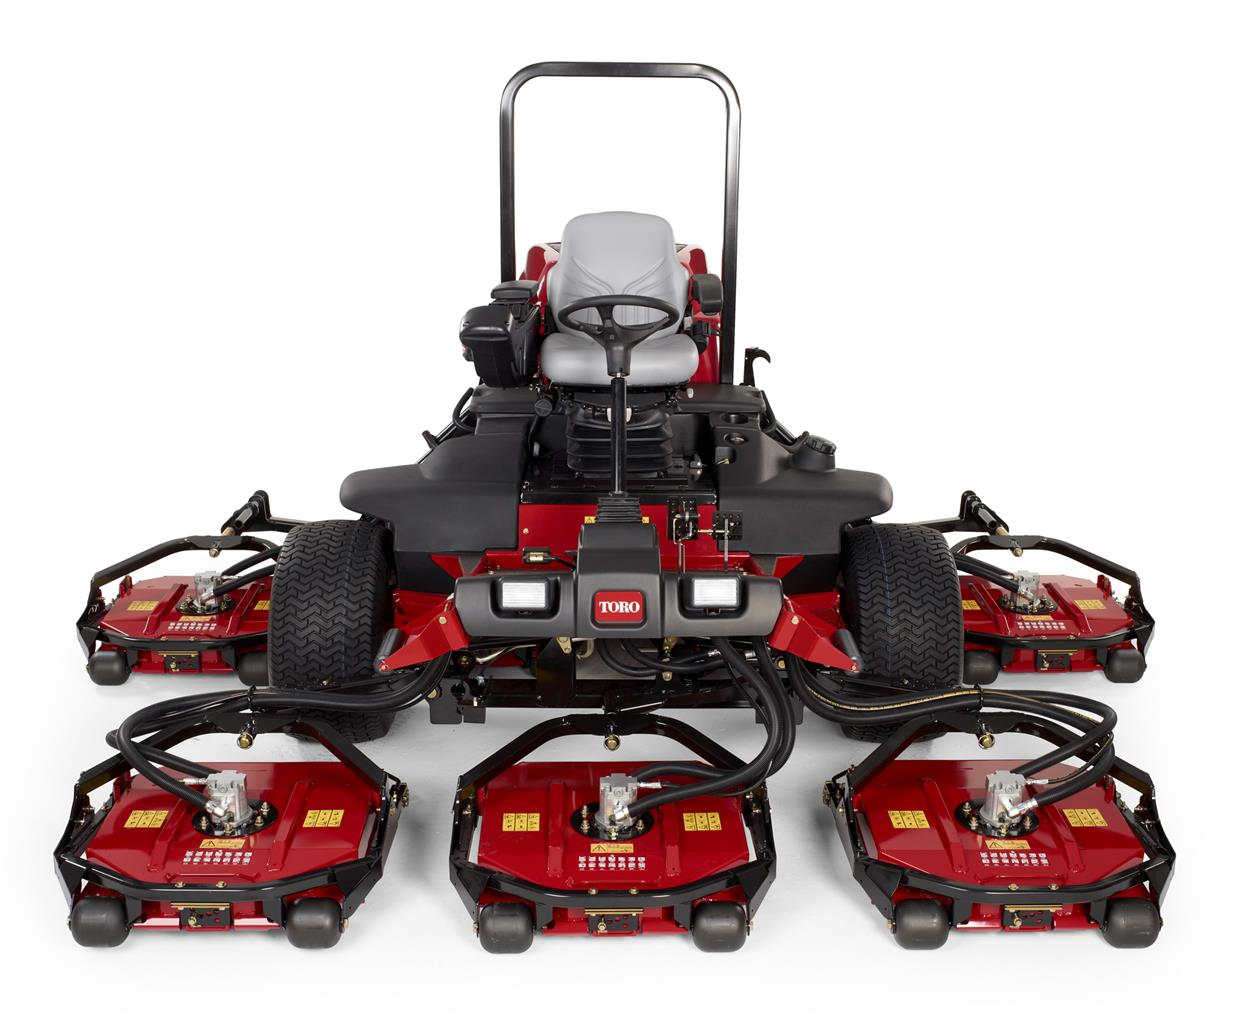 groundsmaster 4700 front.ashx?mw=700&mh=599&hash=F13194F91BF7A0A6052C9665A5C8AFE094A8D088 toro groundsmaster� 4700 d (30882) Toro Groundsmaster 117 Parting Out at reclaimingppi.co